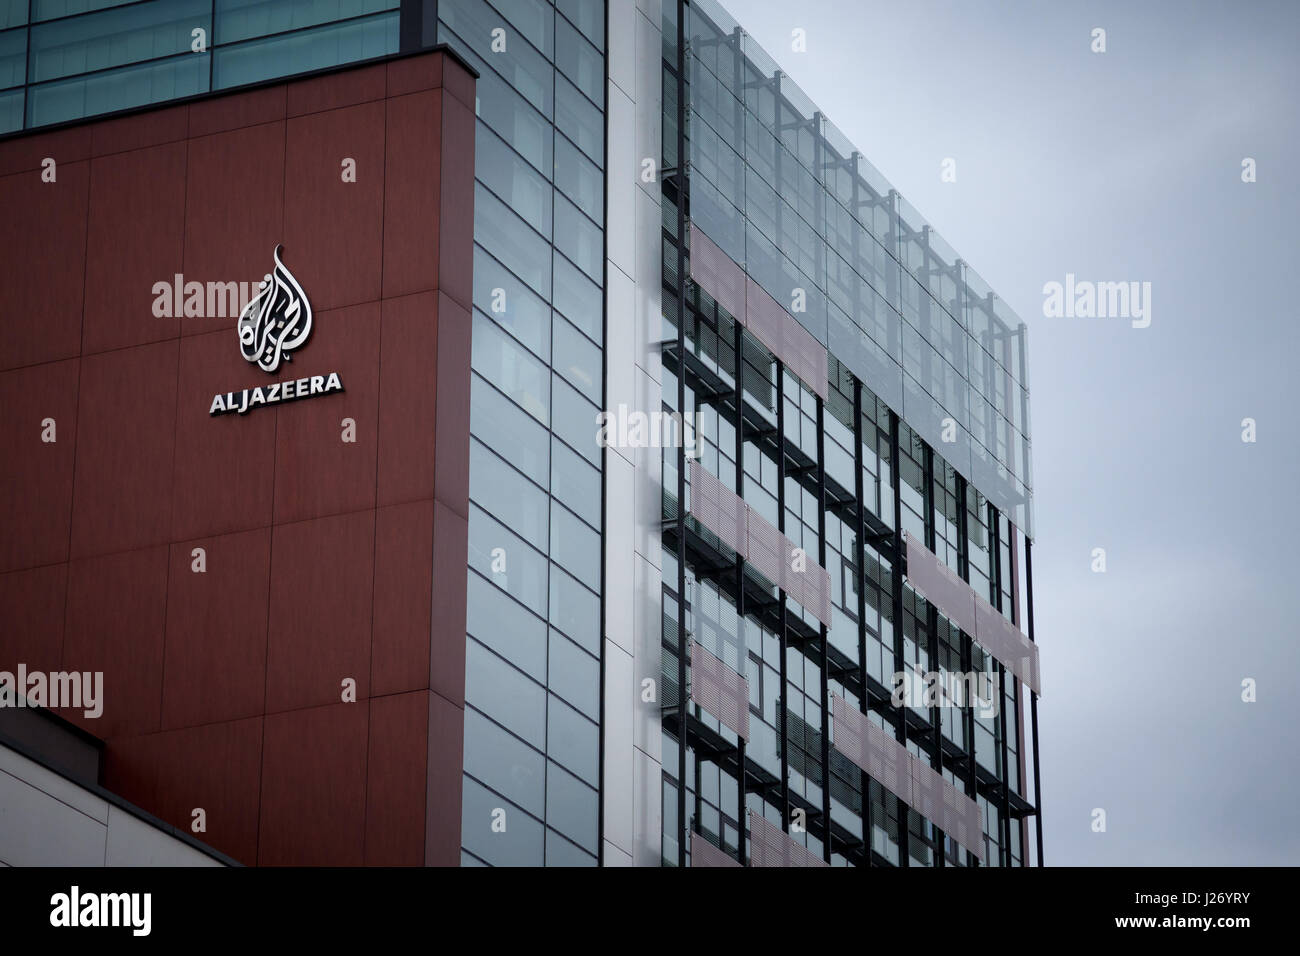 SARAJEVO, BOSNIA HERZEGOVINA - APRIL 17, 2017: Logo of the information TV Channel Al Jazeera Balkans on their headquarters - Stock Image